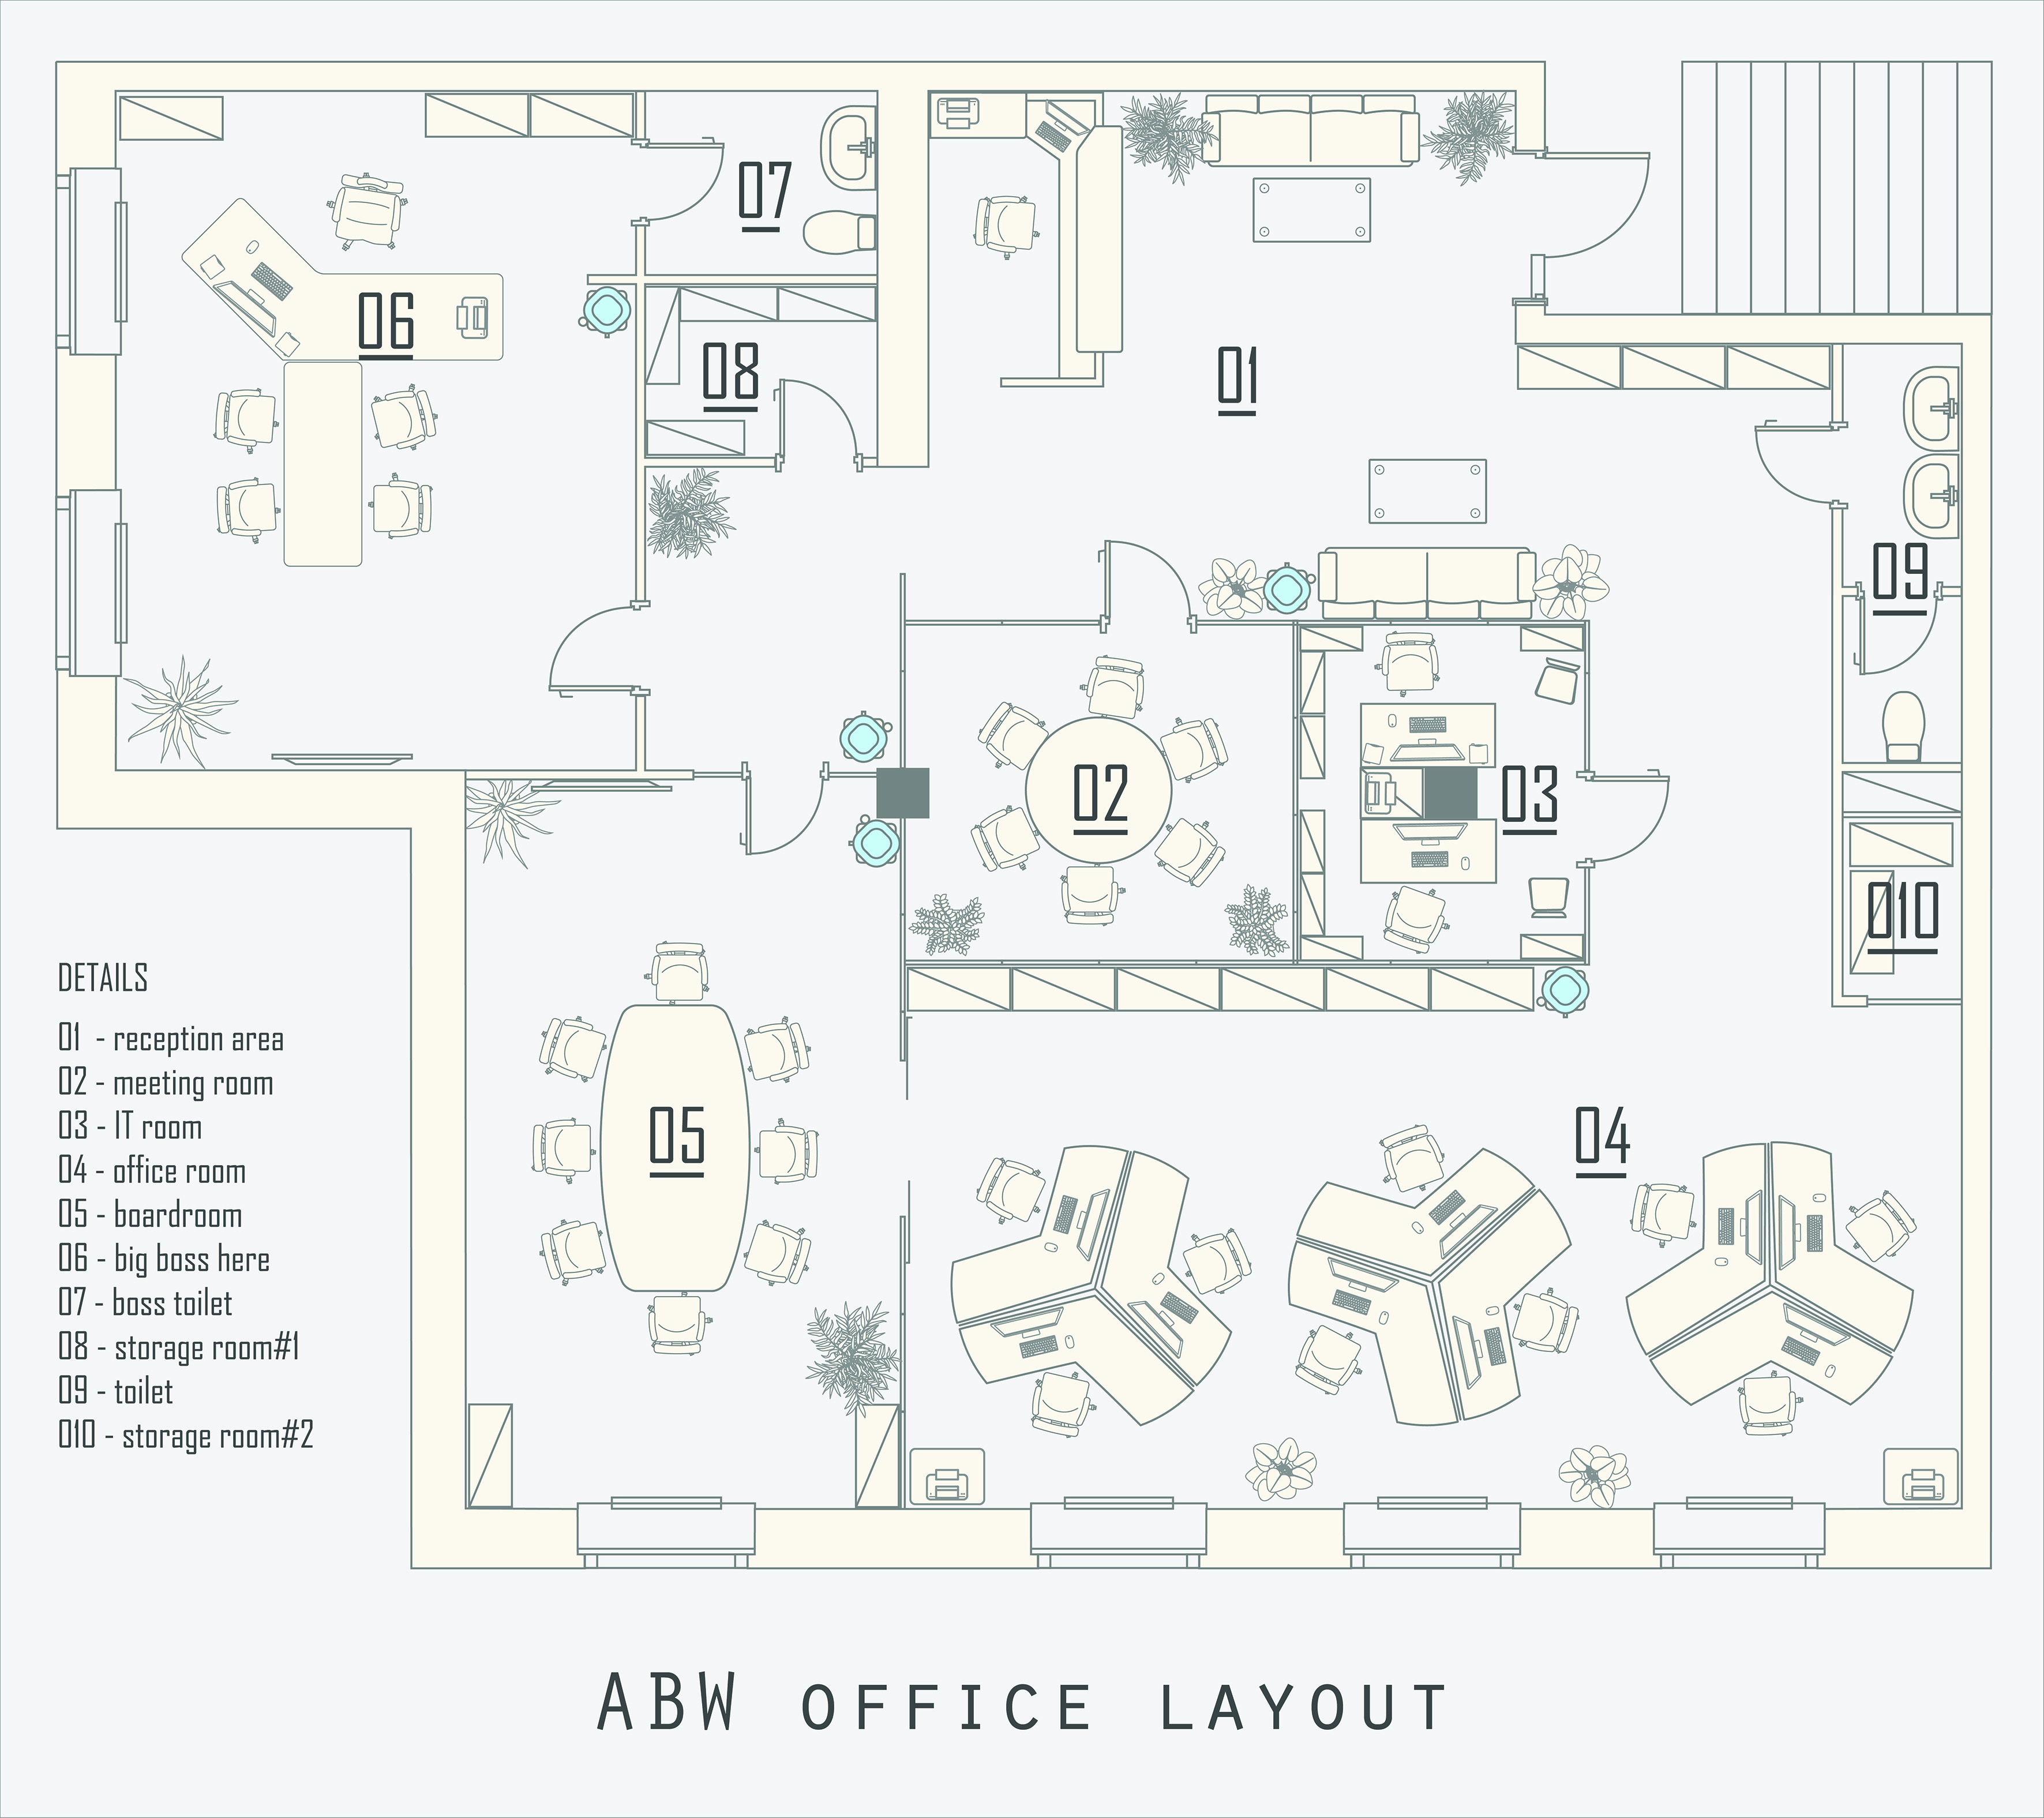 Generational evolution of the offices - from baby boomers to